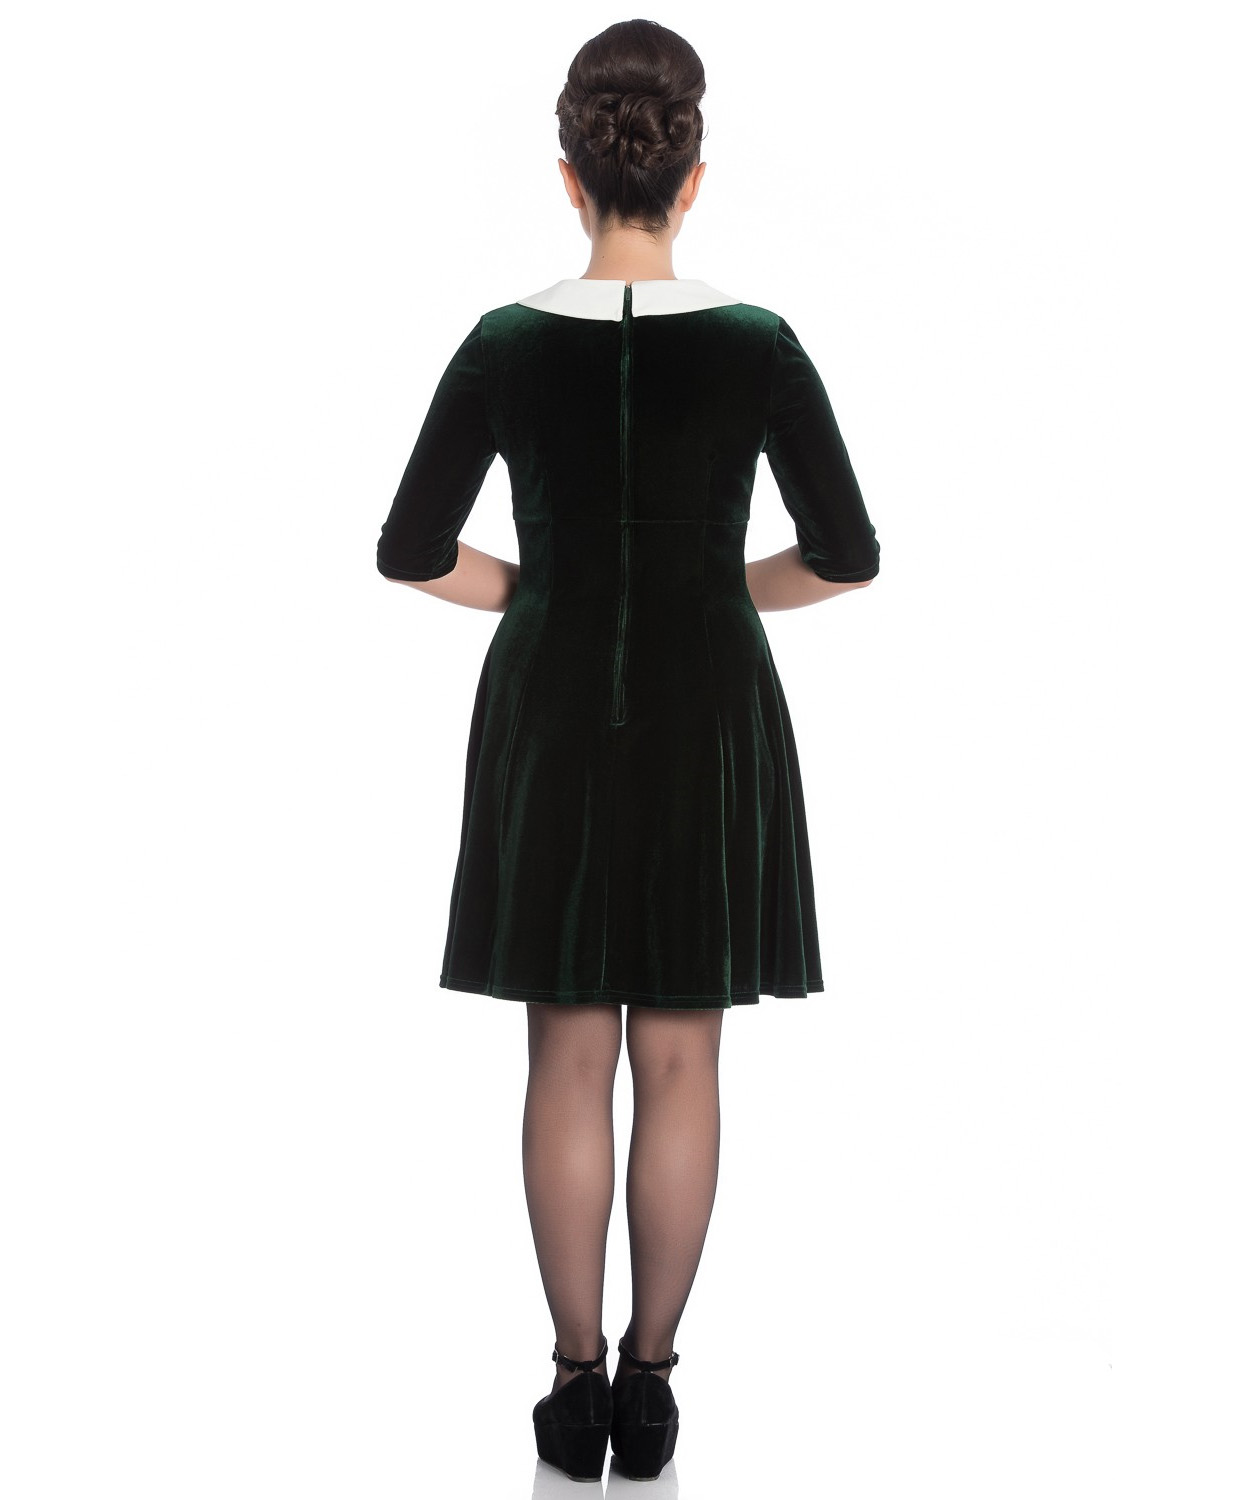 Hell-Bunny-Mini-Skater-Dress-Festive-Christmas-MERRILY-Green-Velvet-All-Sizes thumbnail 10